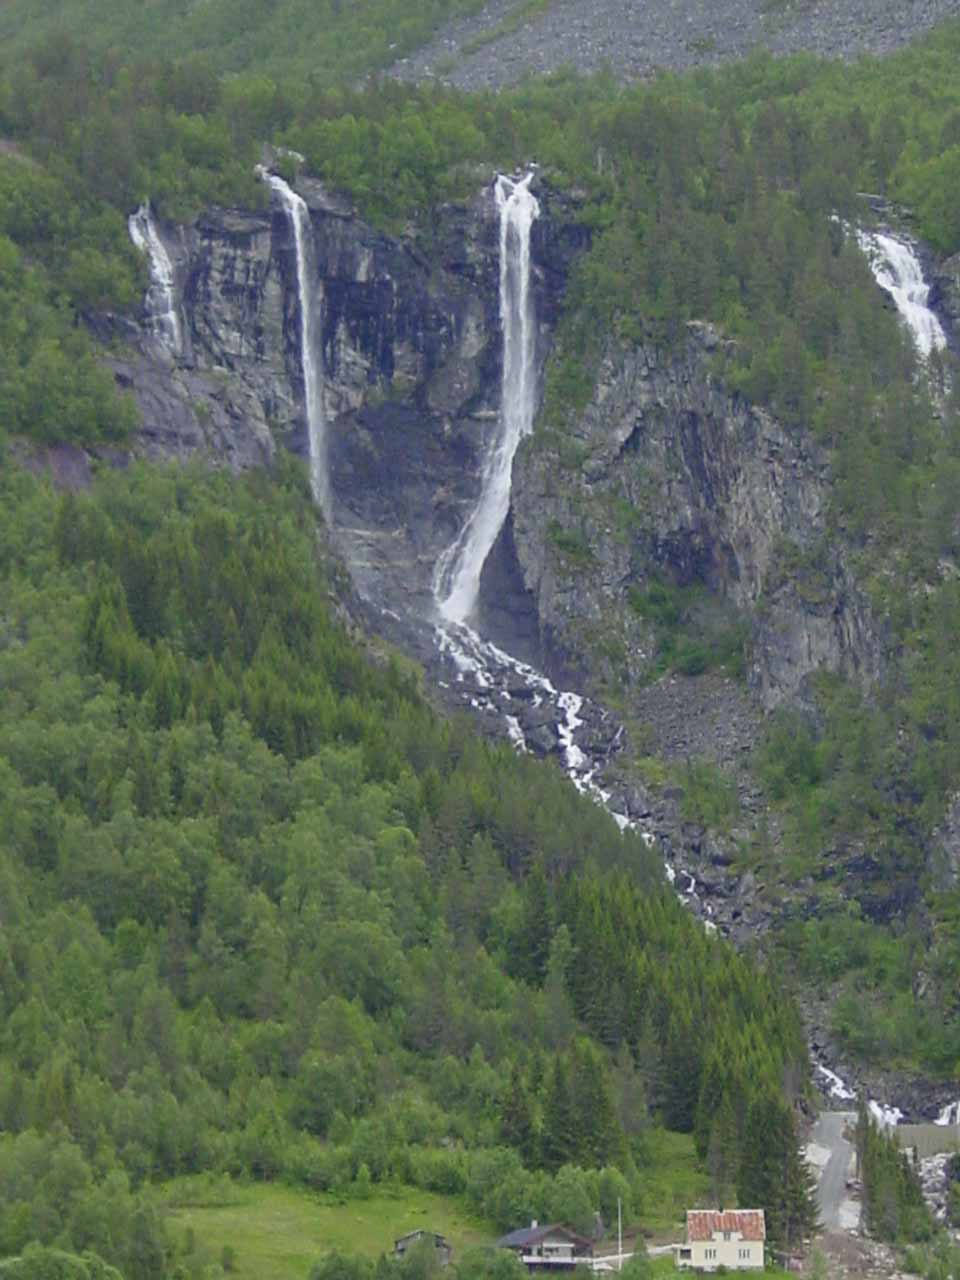 Closer look at Geisfossen dwarfing a building below for scale